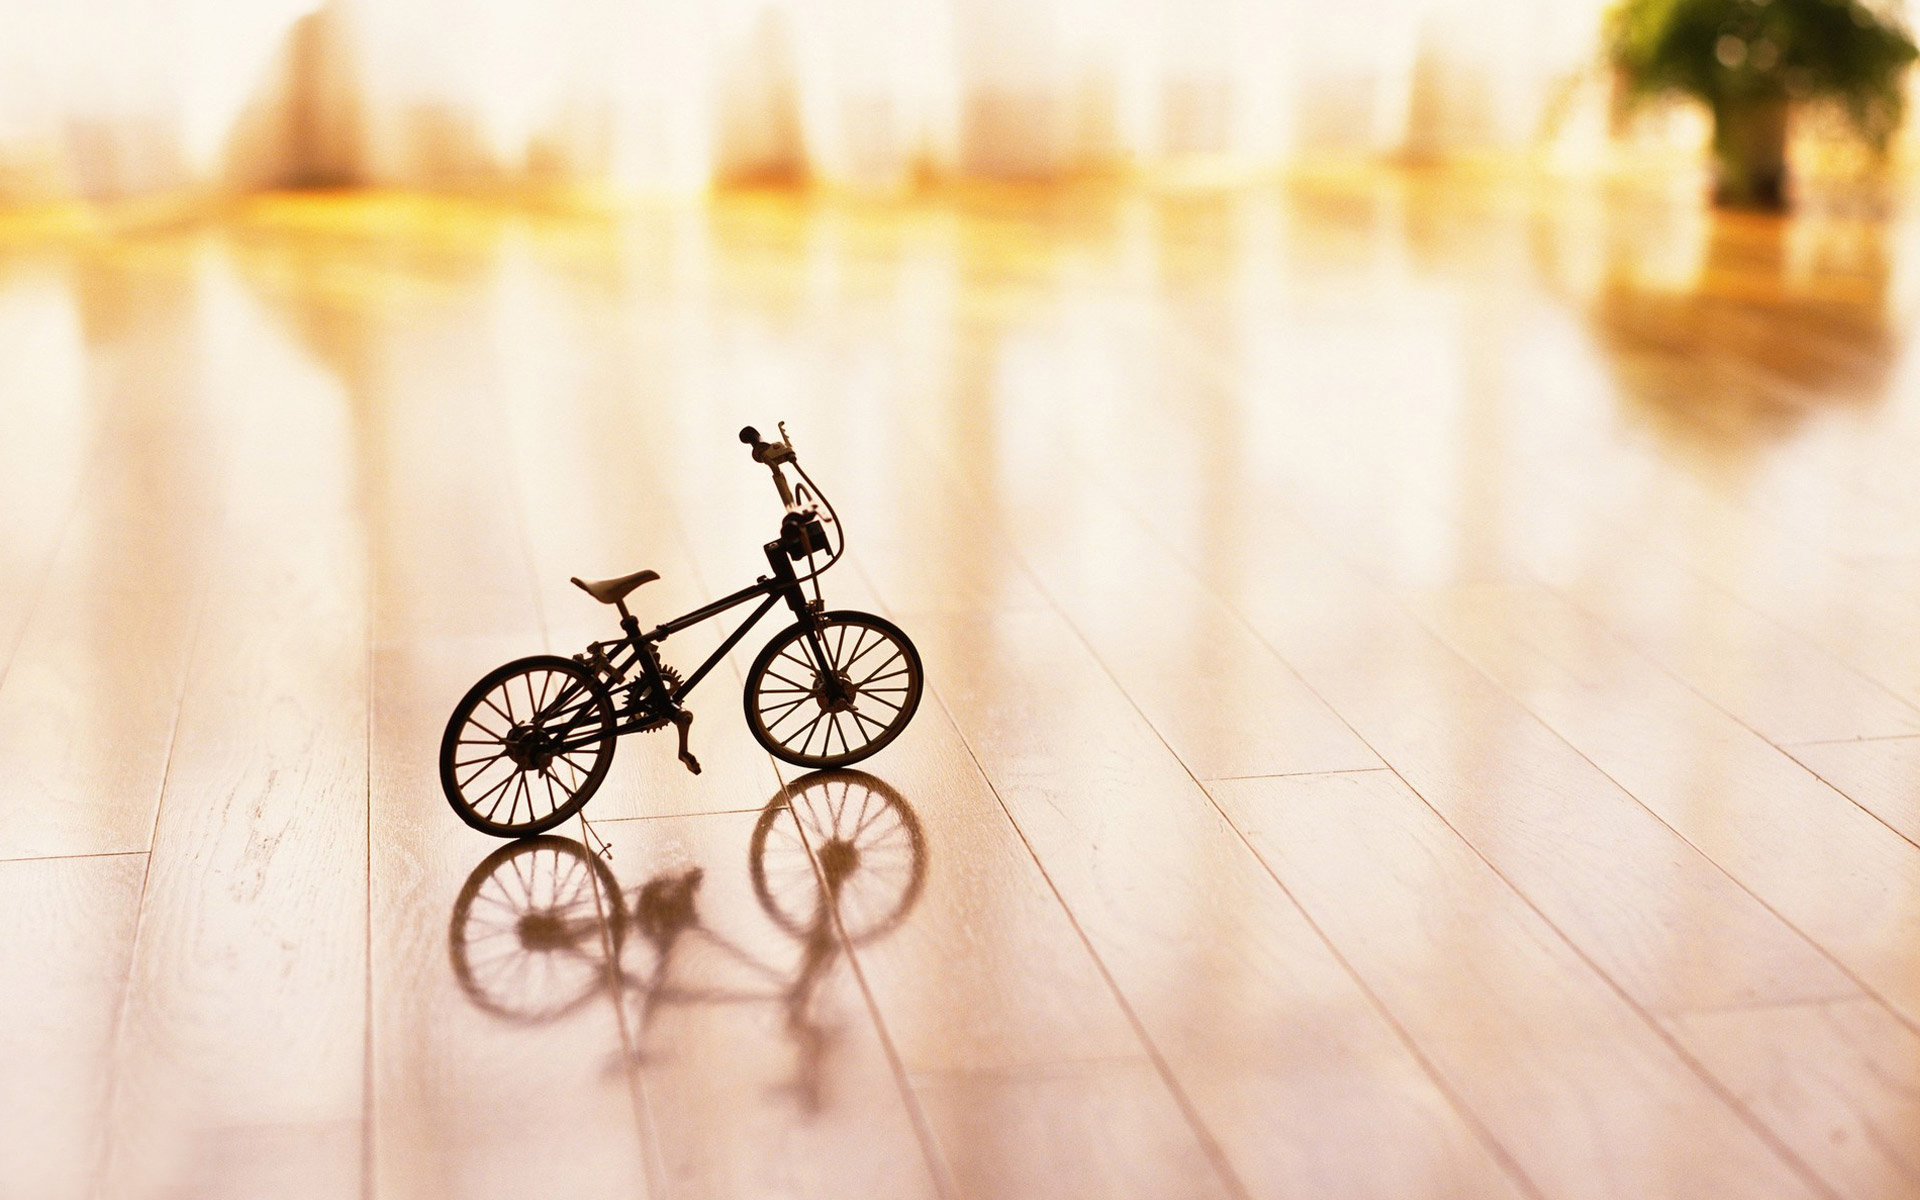 Small bicycle prototype on the wooden ground HD wallpaper ...